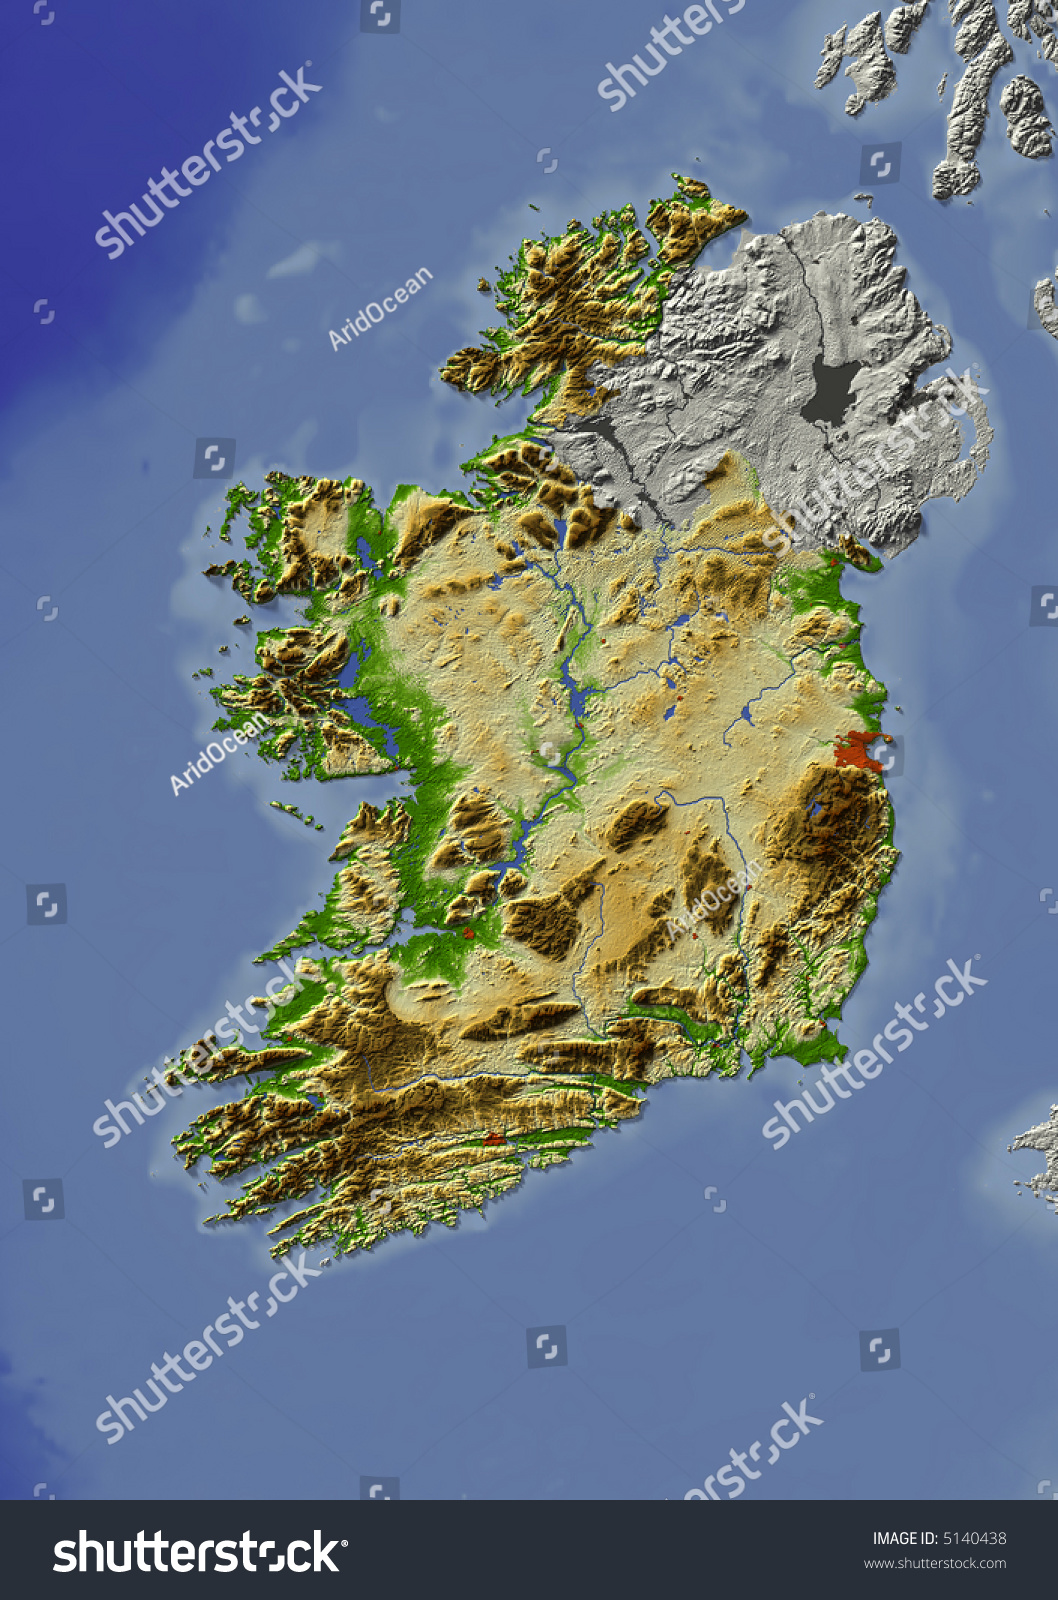 3d Relief Map Of Ireland Shows Major Cities And Rivers